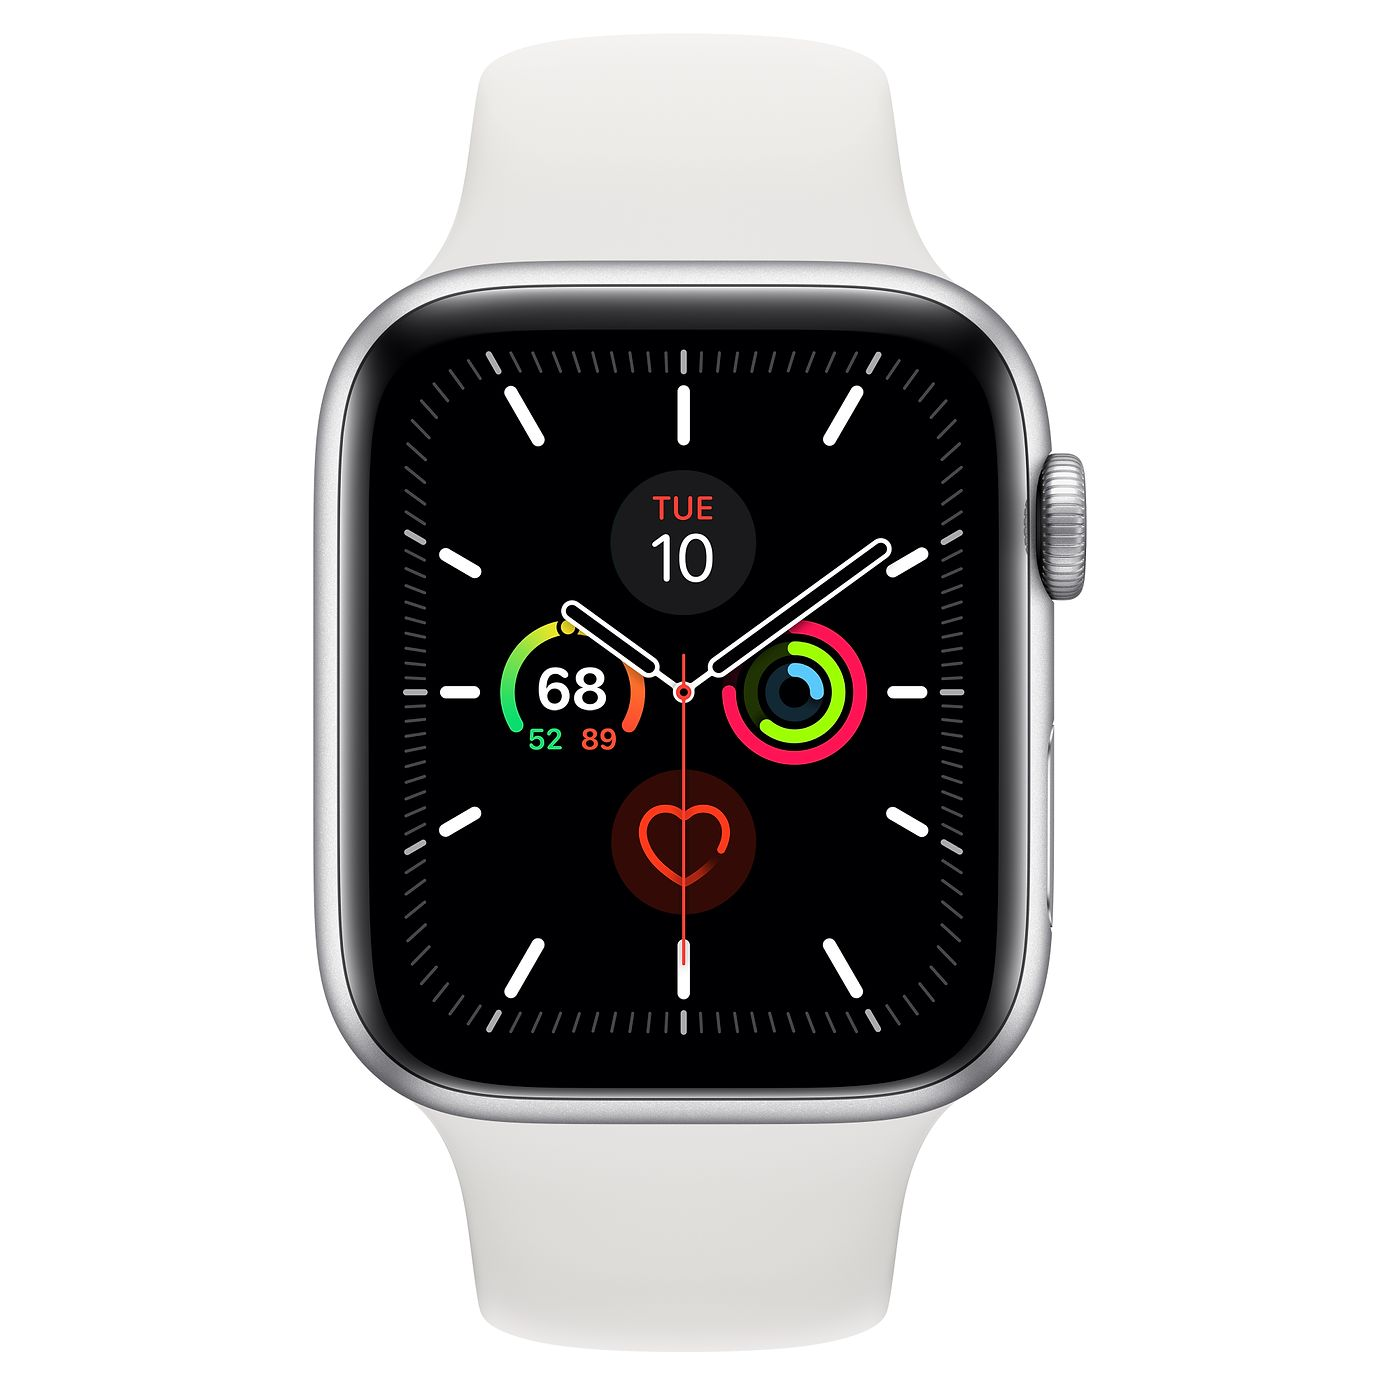 photo: Apple Watch Series 5 gps watch